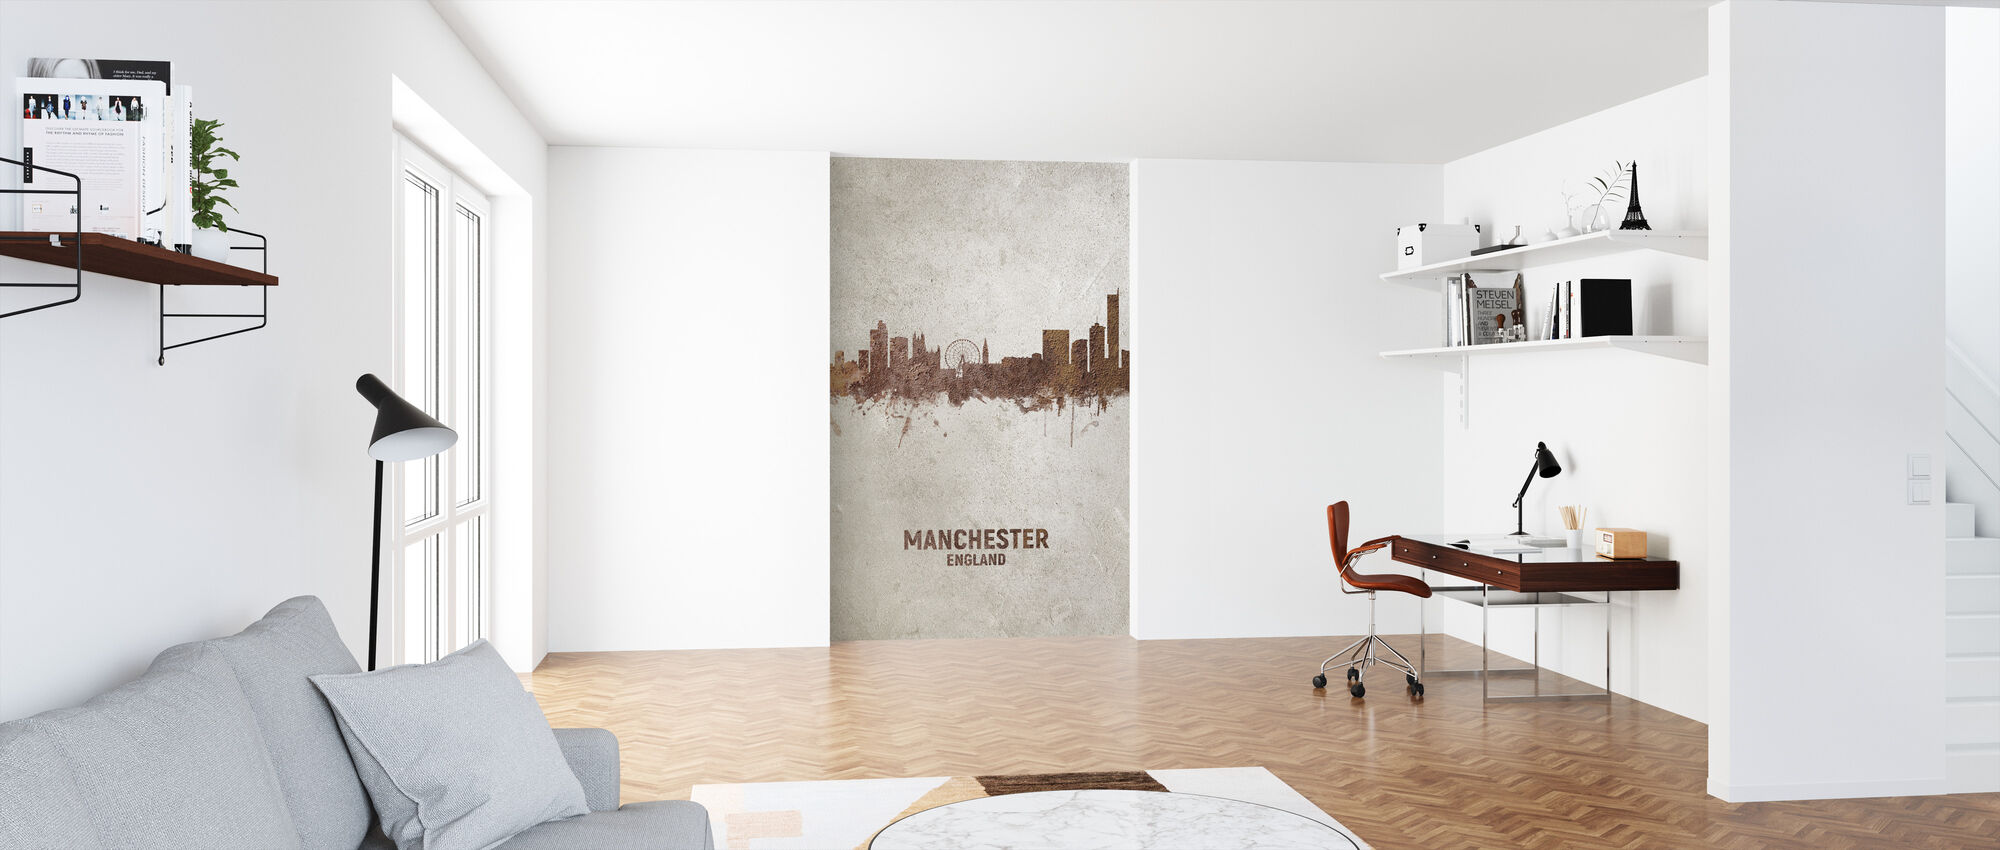 Manchester England Rust Skyline - Wallpaper - Office